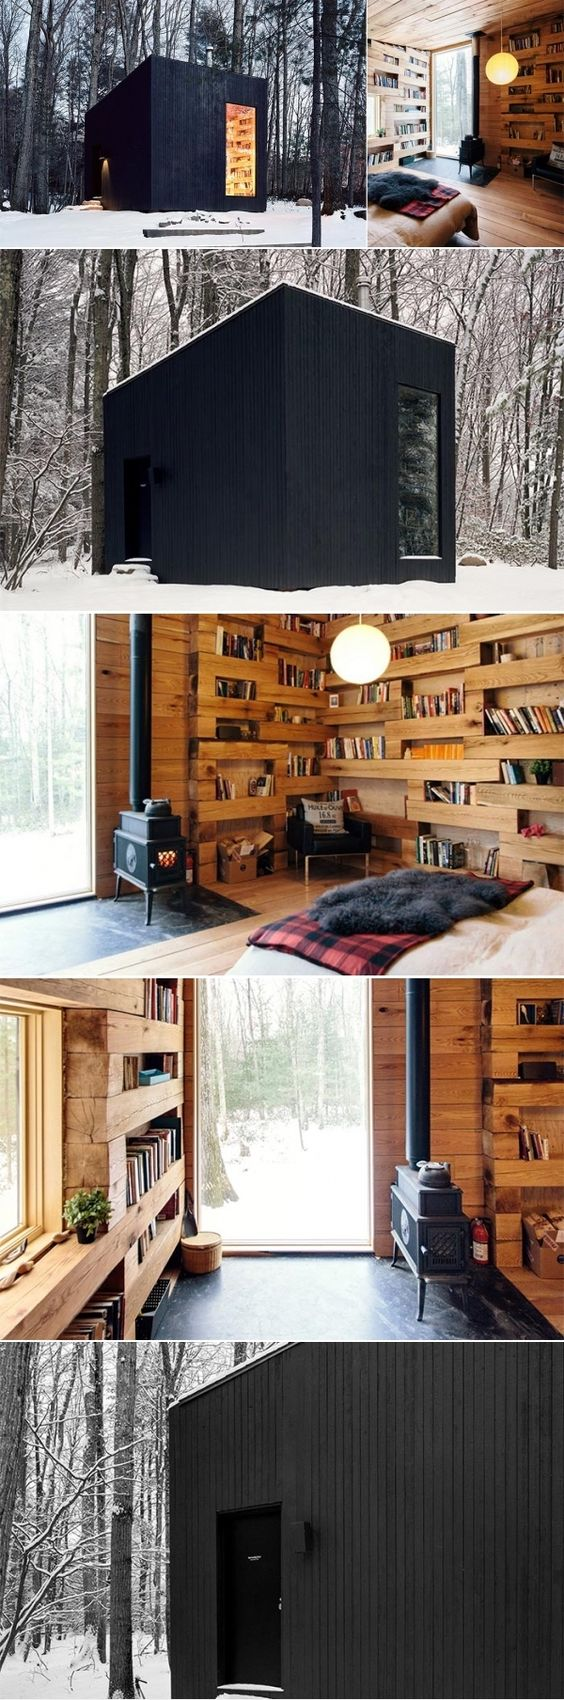 Studio padron cabin for the upstate new york and new york for Upstate new york cabin